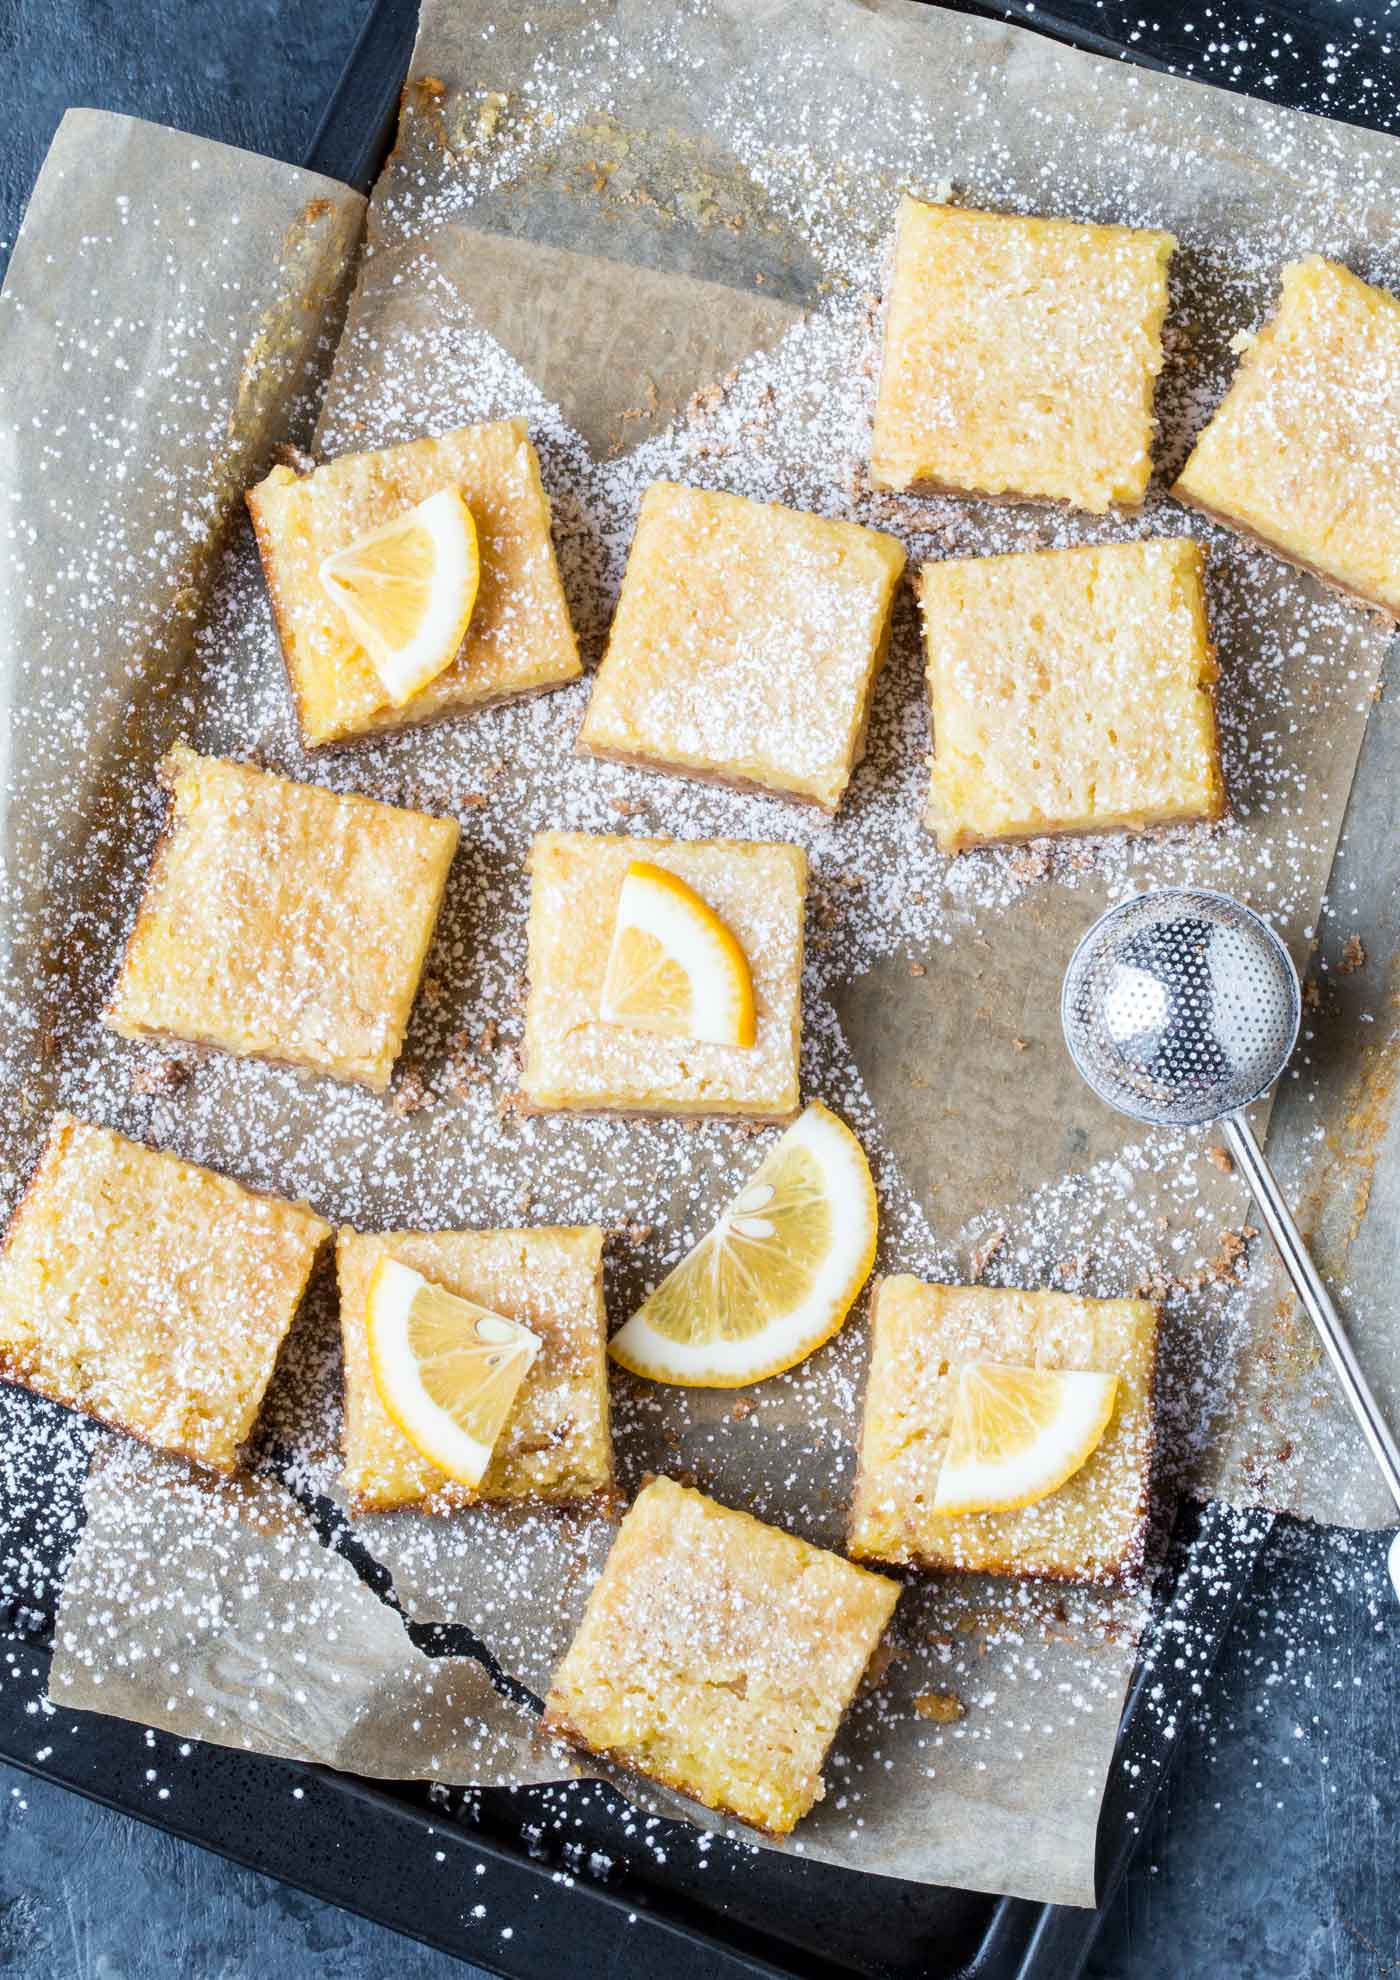 Top down shot of cut Coconut Lemon Bars on parchment paper. Dusted with powdered sugar and garnish with fresh lemon slices.